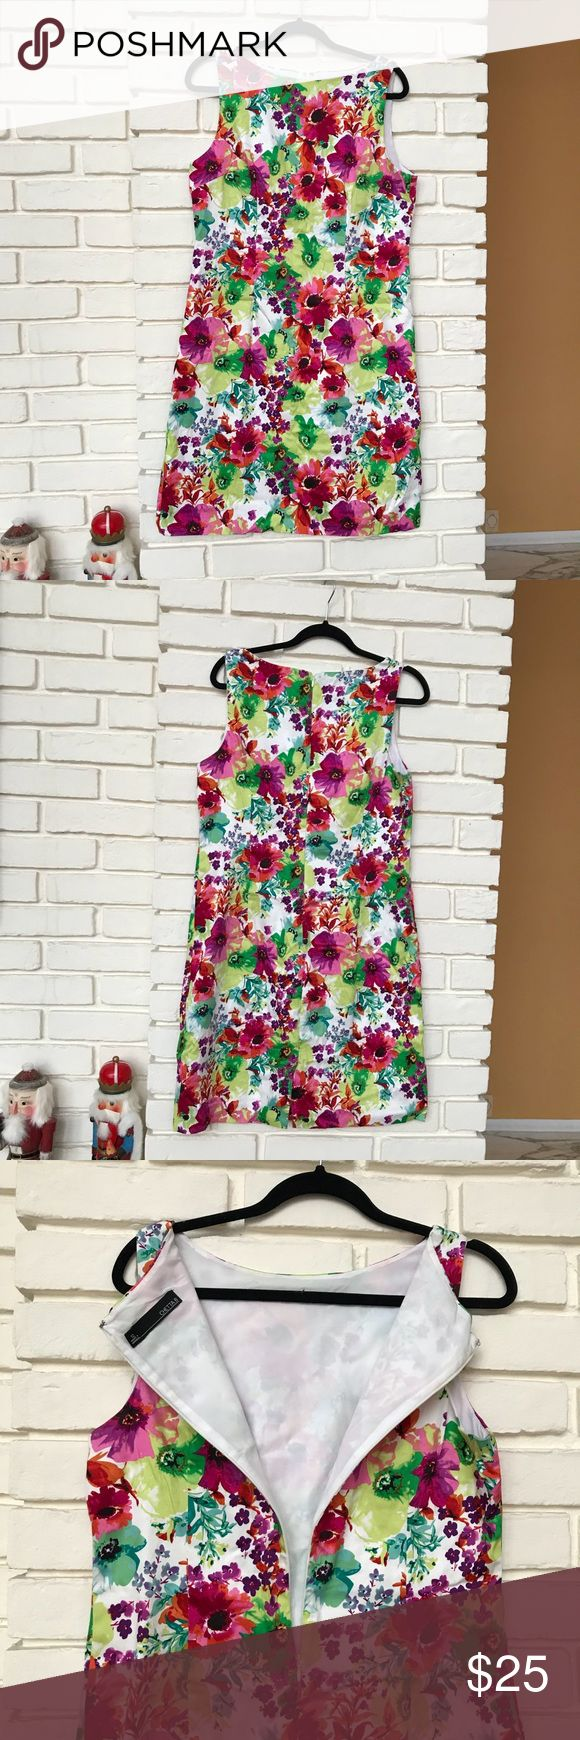 Adorable dress 👗 12 Adorable, super cute floral dress, Chetta B size 12. Lined. Non smoking. Pit to pit 20 Length 38 chetta B Dresses Midi